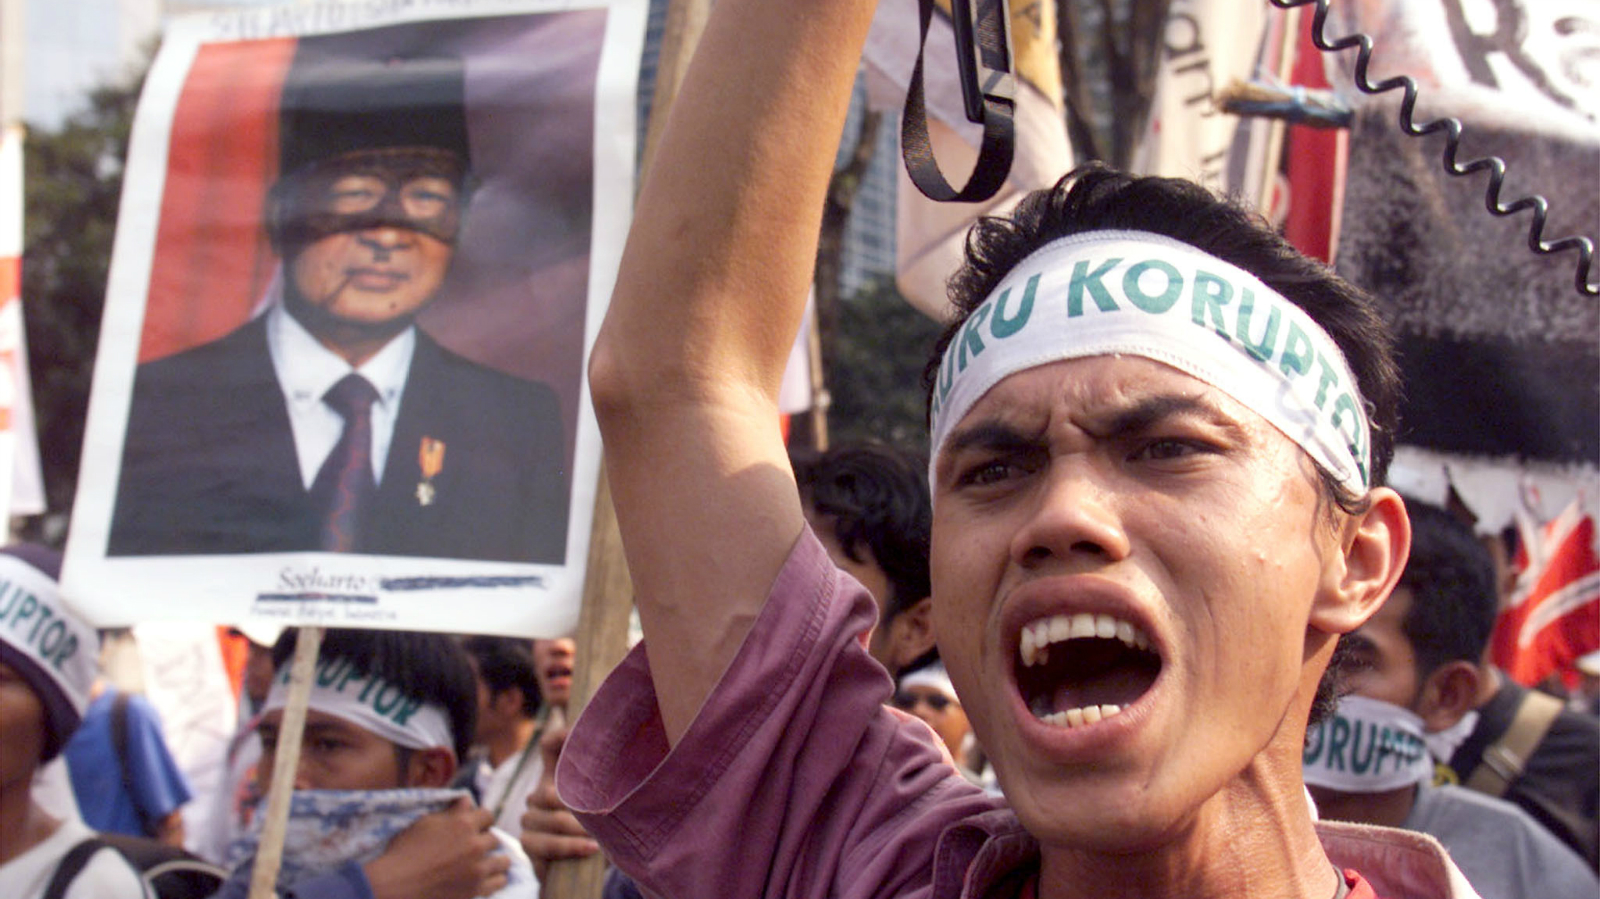 Indonesian protesters shout slogans and carry a poster of former president Suharto as they march though the streets of Jakarta May 12. Hundreds of students took to the streets on Friday to mark the second anniversary of bloody riots which helped to topple former President Suharto. Social and economic chaos and protests by tens of thousands of students demanding democratic reforms helped bring Suharto's army-backed rule to an end on May 21, 1998.